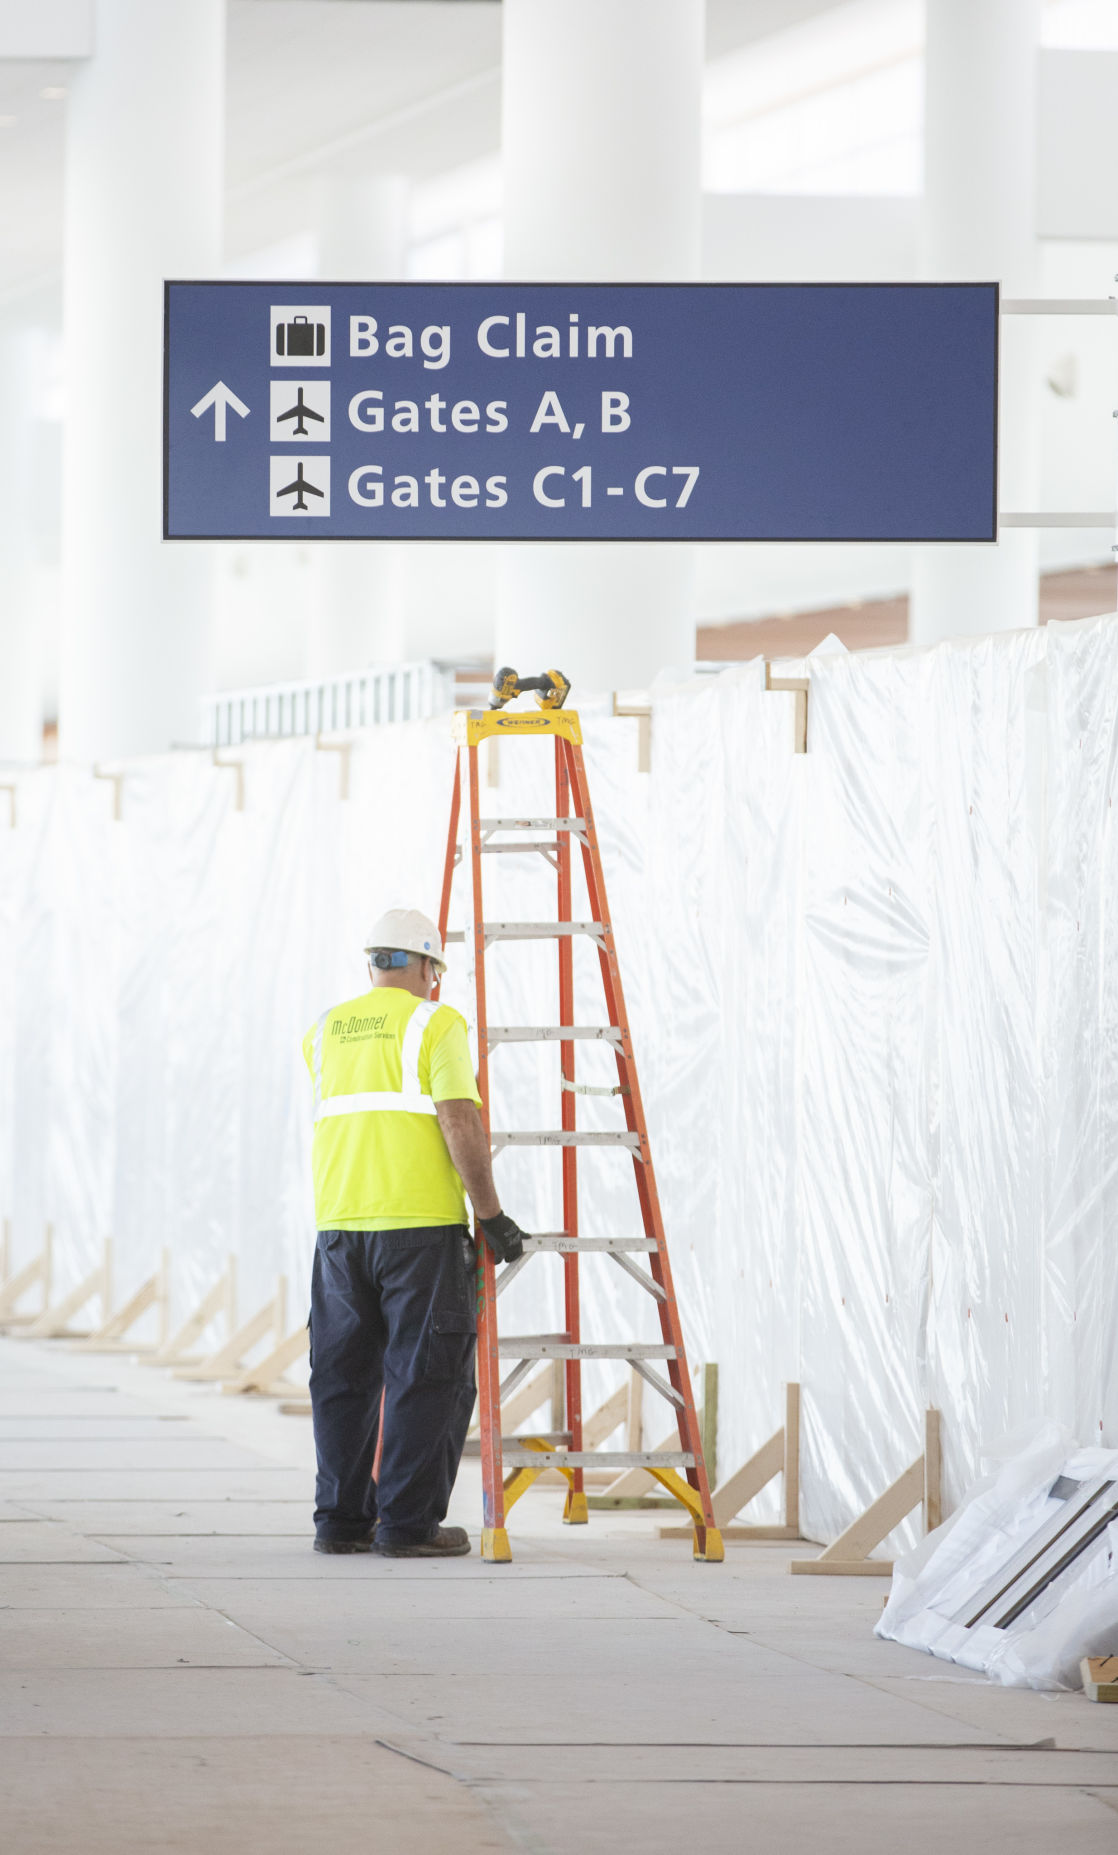 Dan Fagan: Mitch Landrieu's last gift to New Orleans? His costly, mistake-riddled airport project